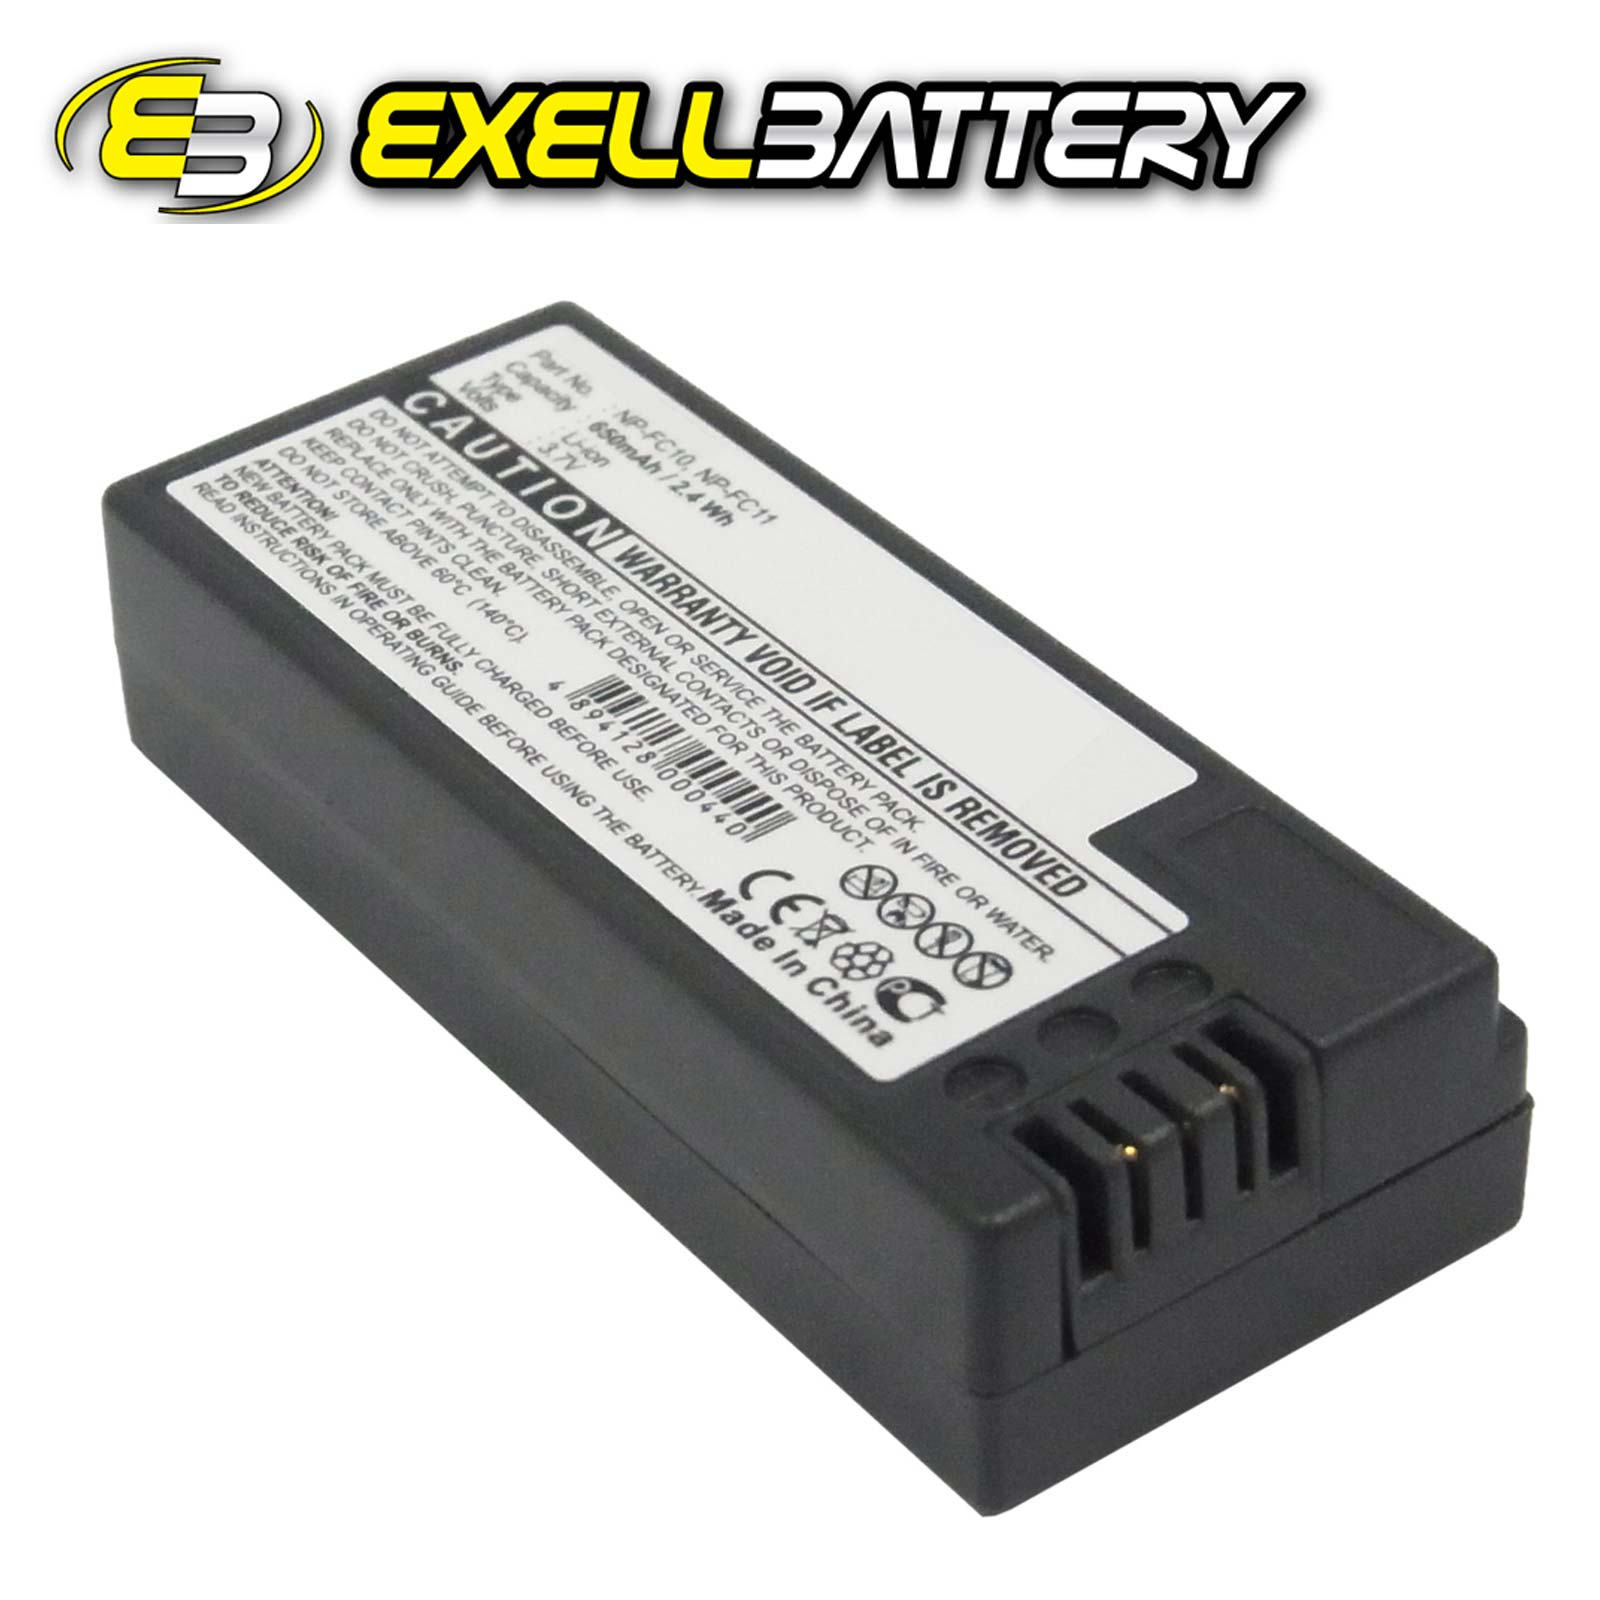 3.7V 650mAh Li-Ion Digital Camera Battery Fits Sony Cyber-shot DSC-P12 DSC-V1